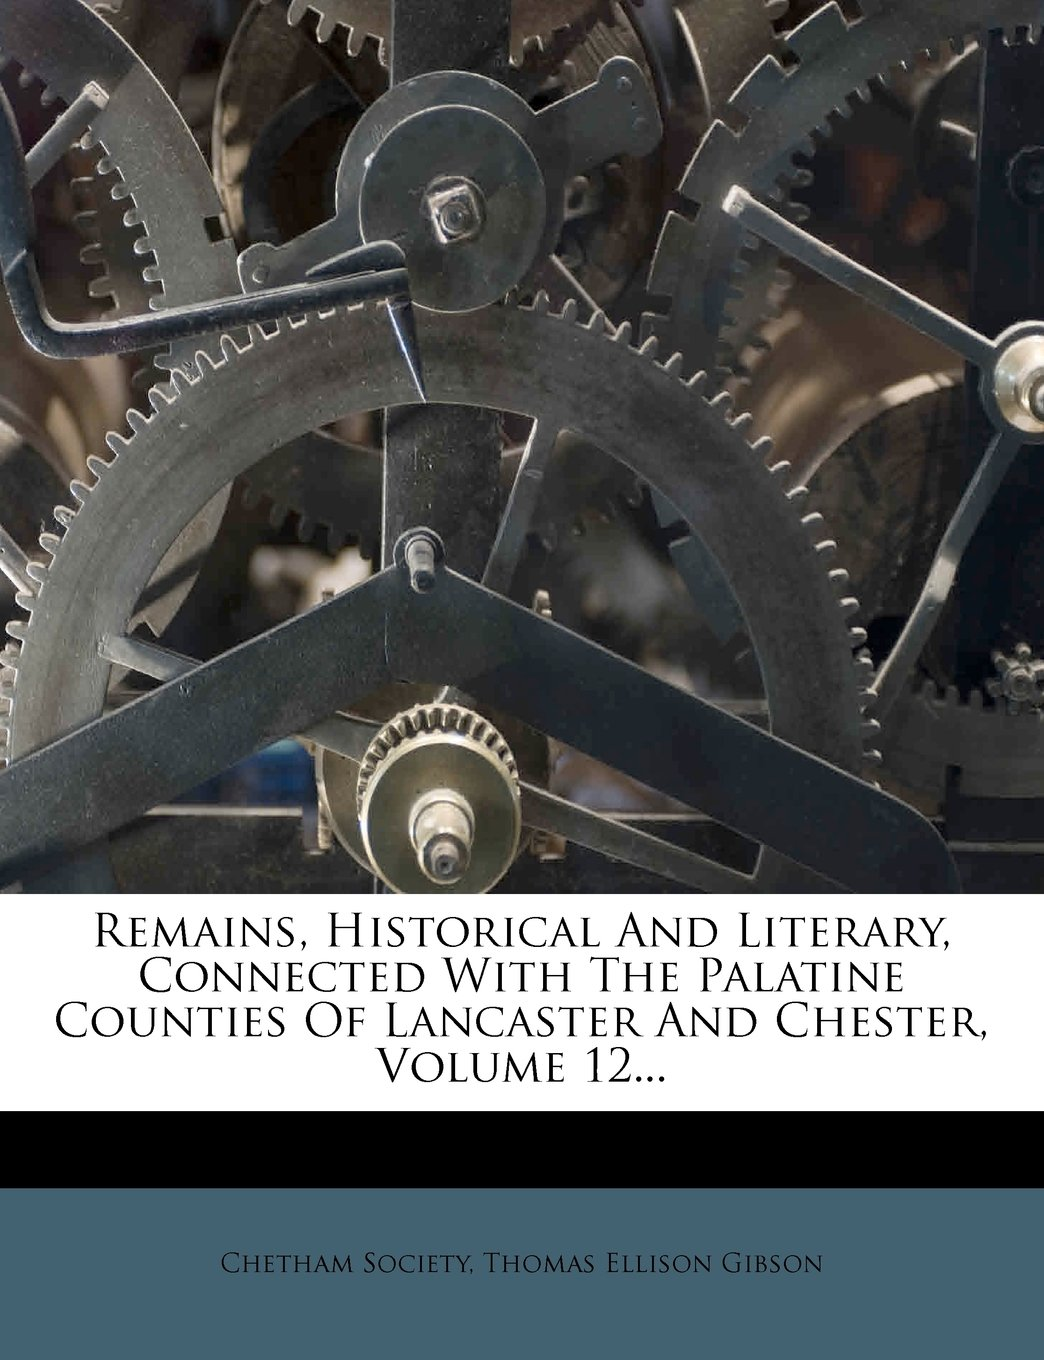 Remains, Historical And Literary, Connected With The Palatine Counties Of Lancaster And Chester, Volume 12... ebook